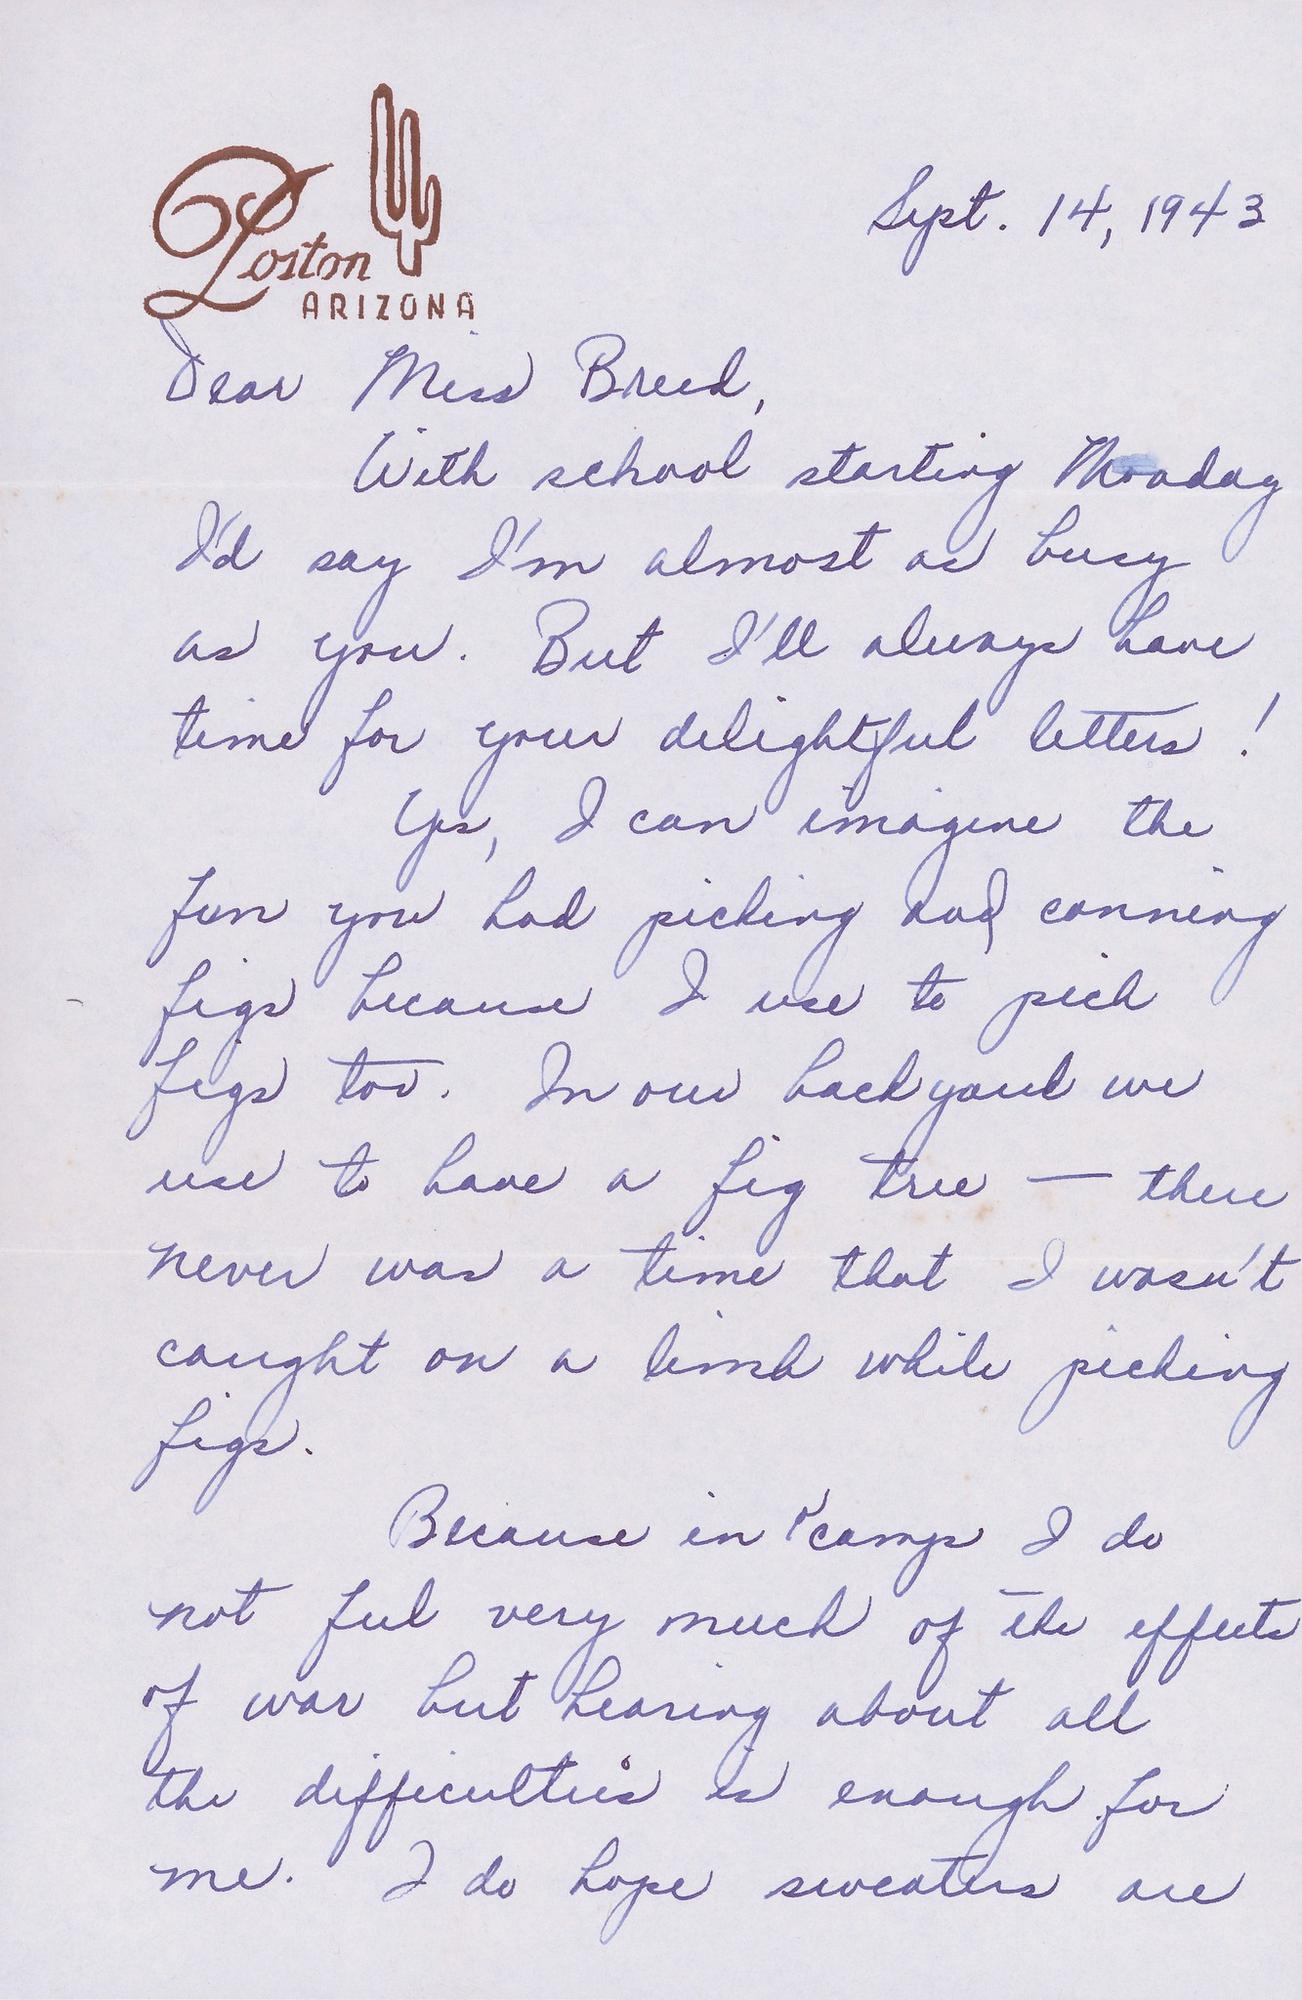 A 1943 letter from Louise Ogawa.